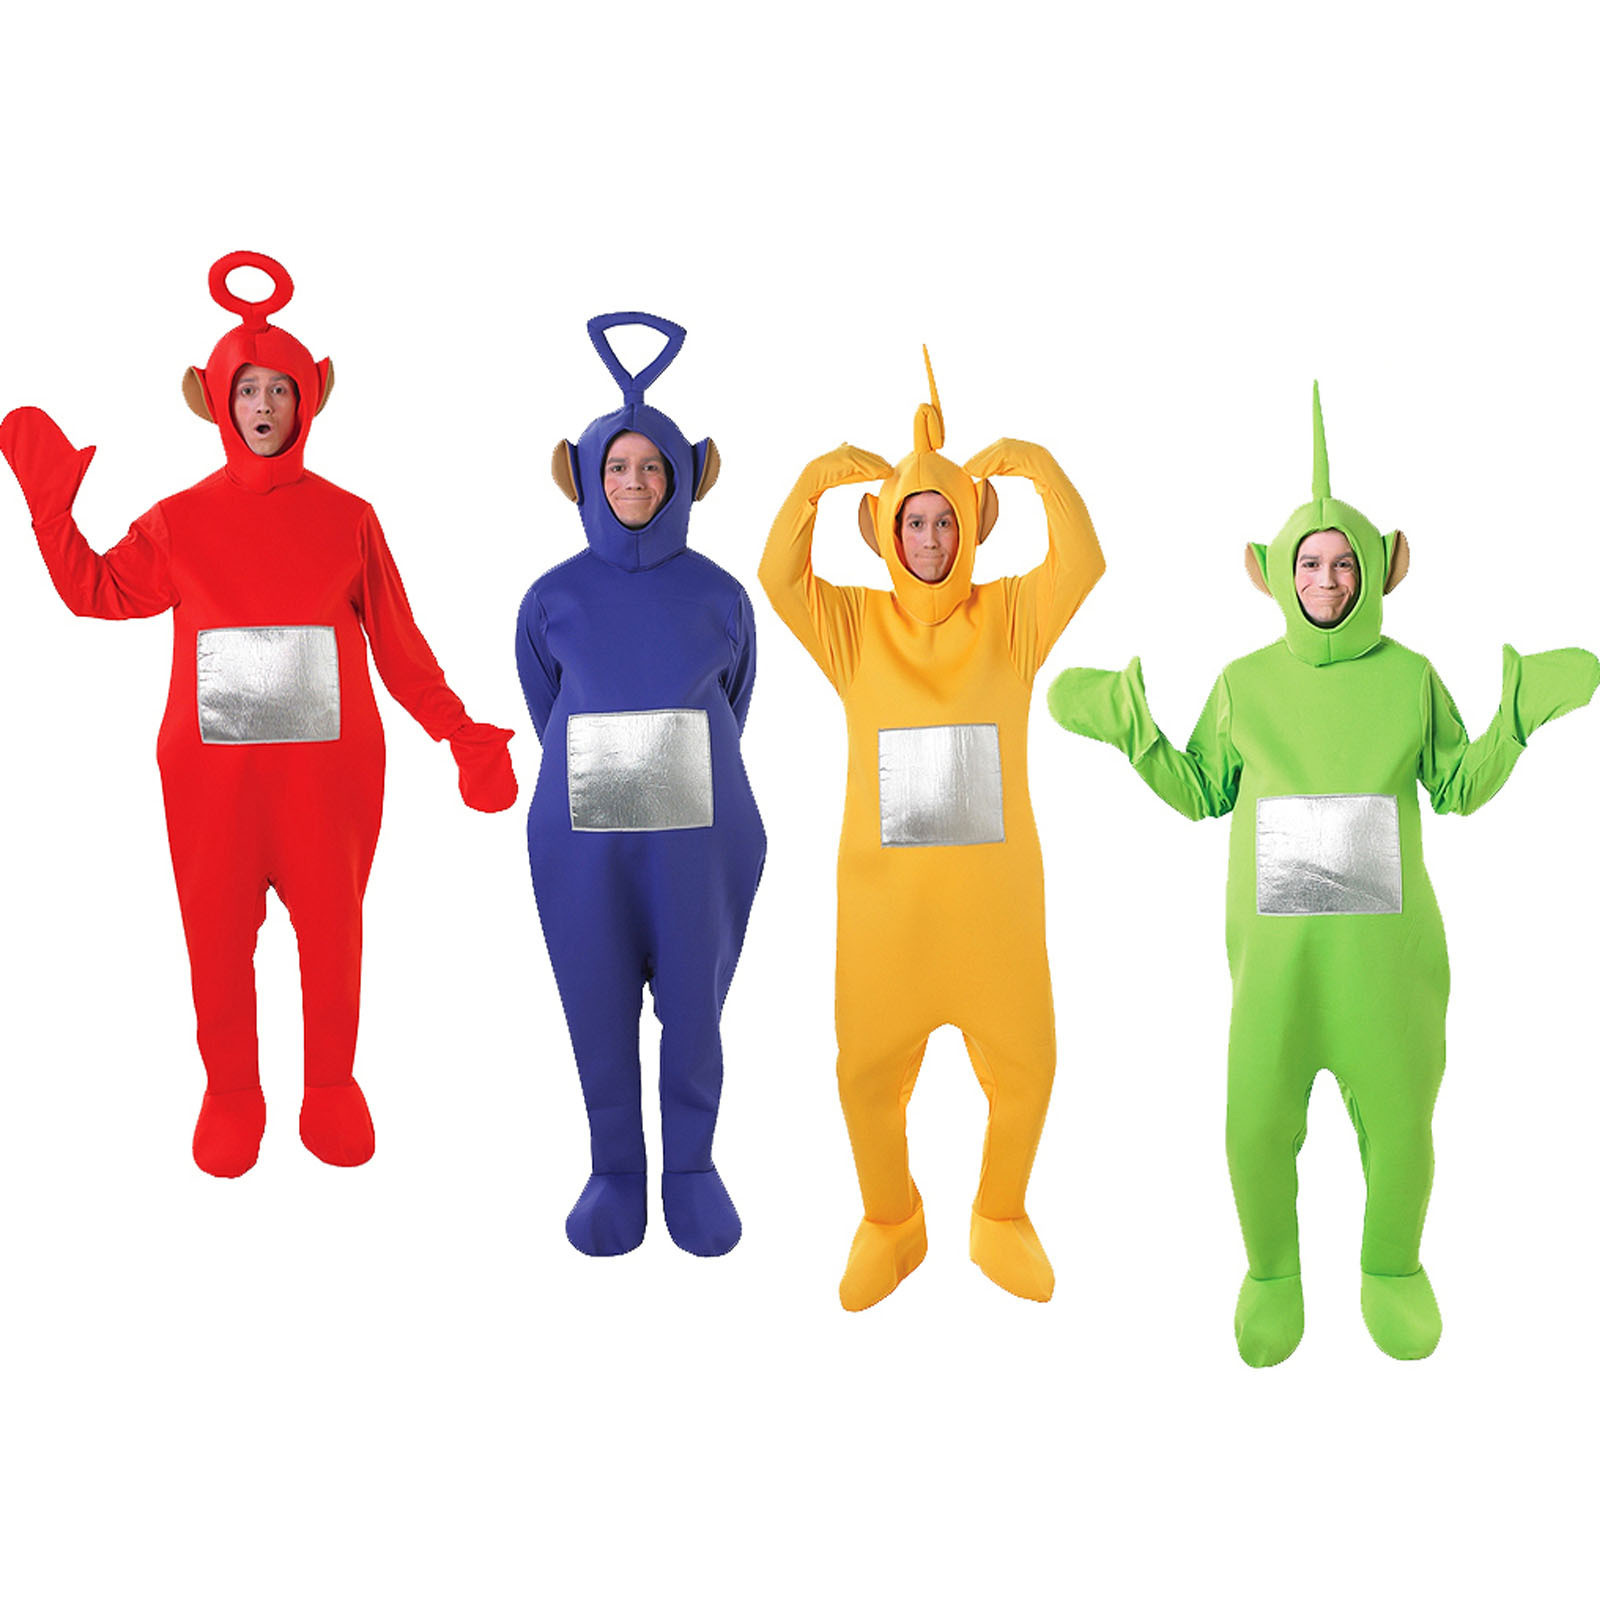 Rubieu0027s  sc 1 st  eBay & Rubies Adult Official Teletubbies Costume Mens Womens TV Fancy Dress ...